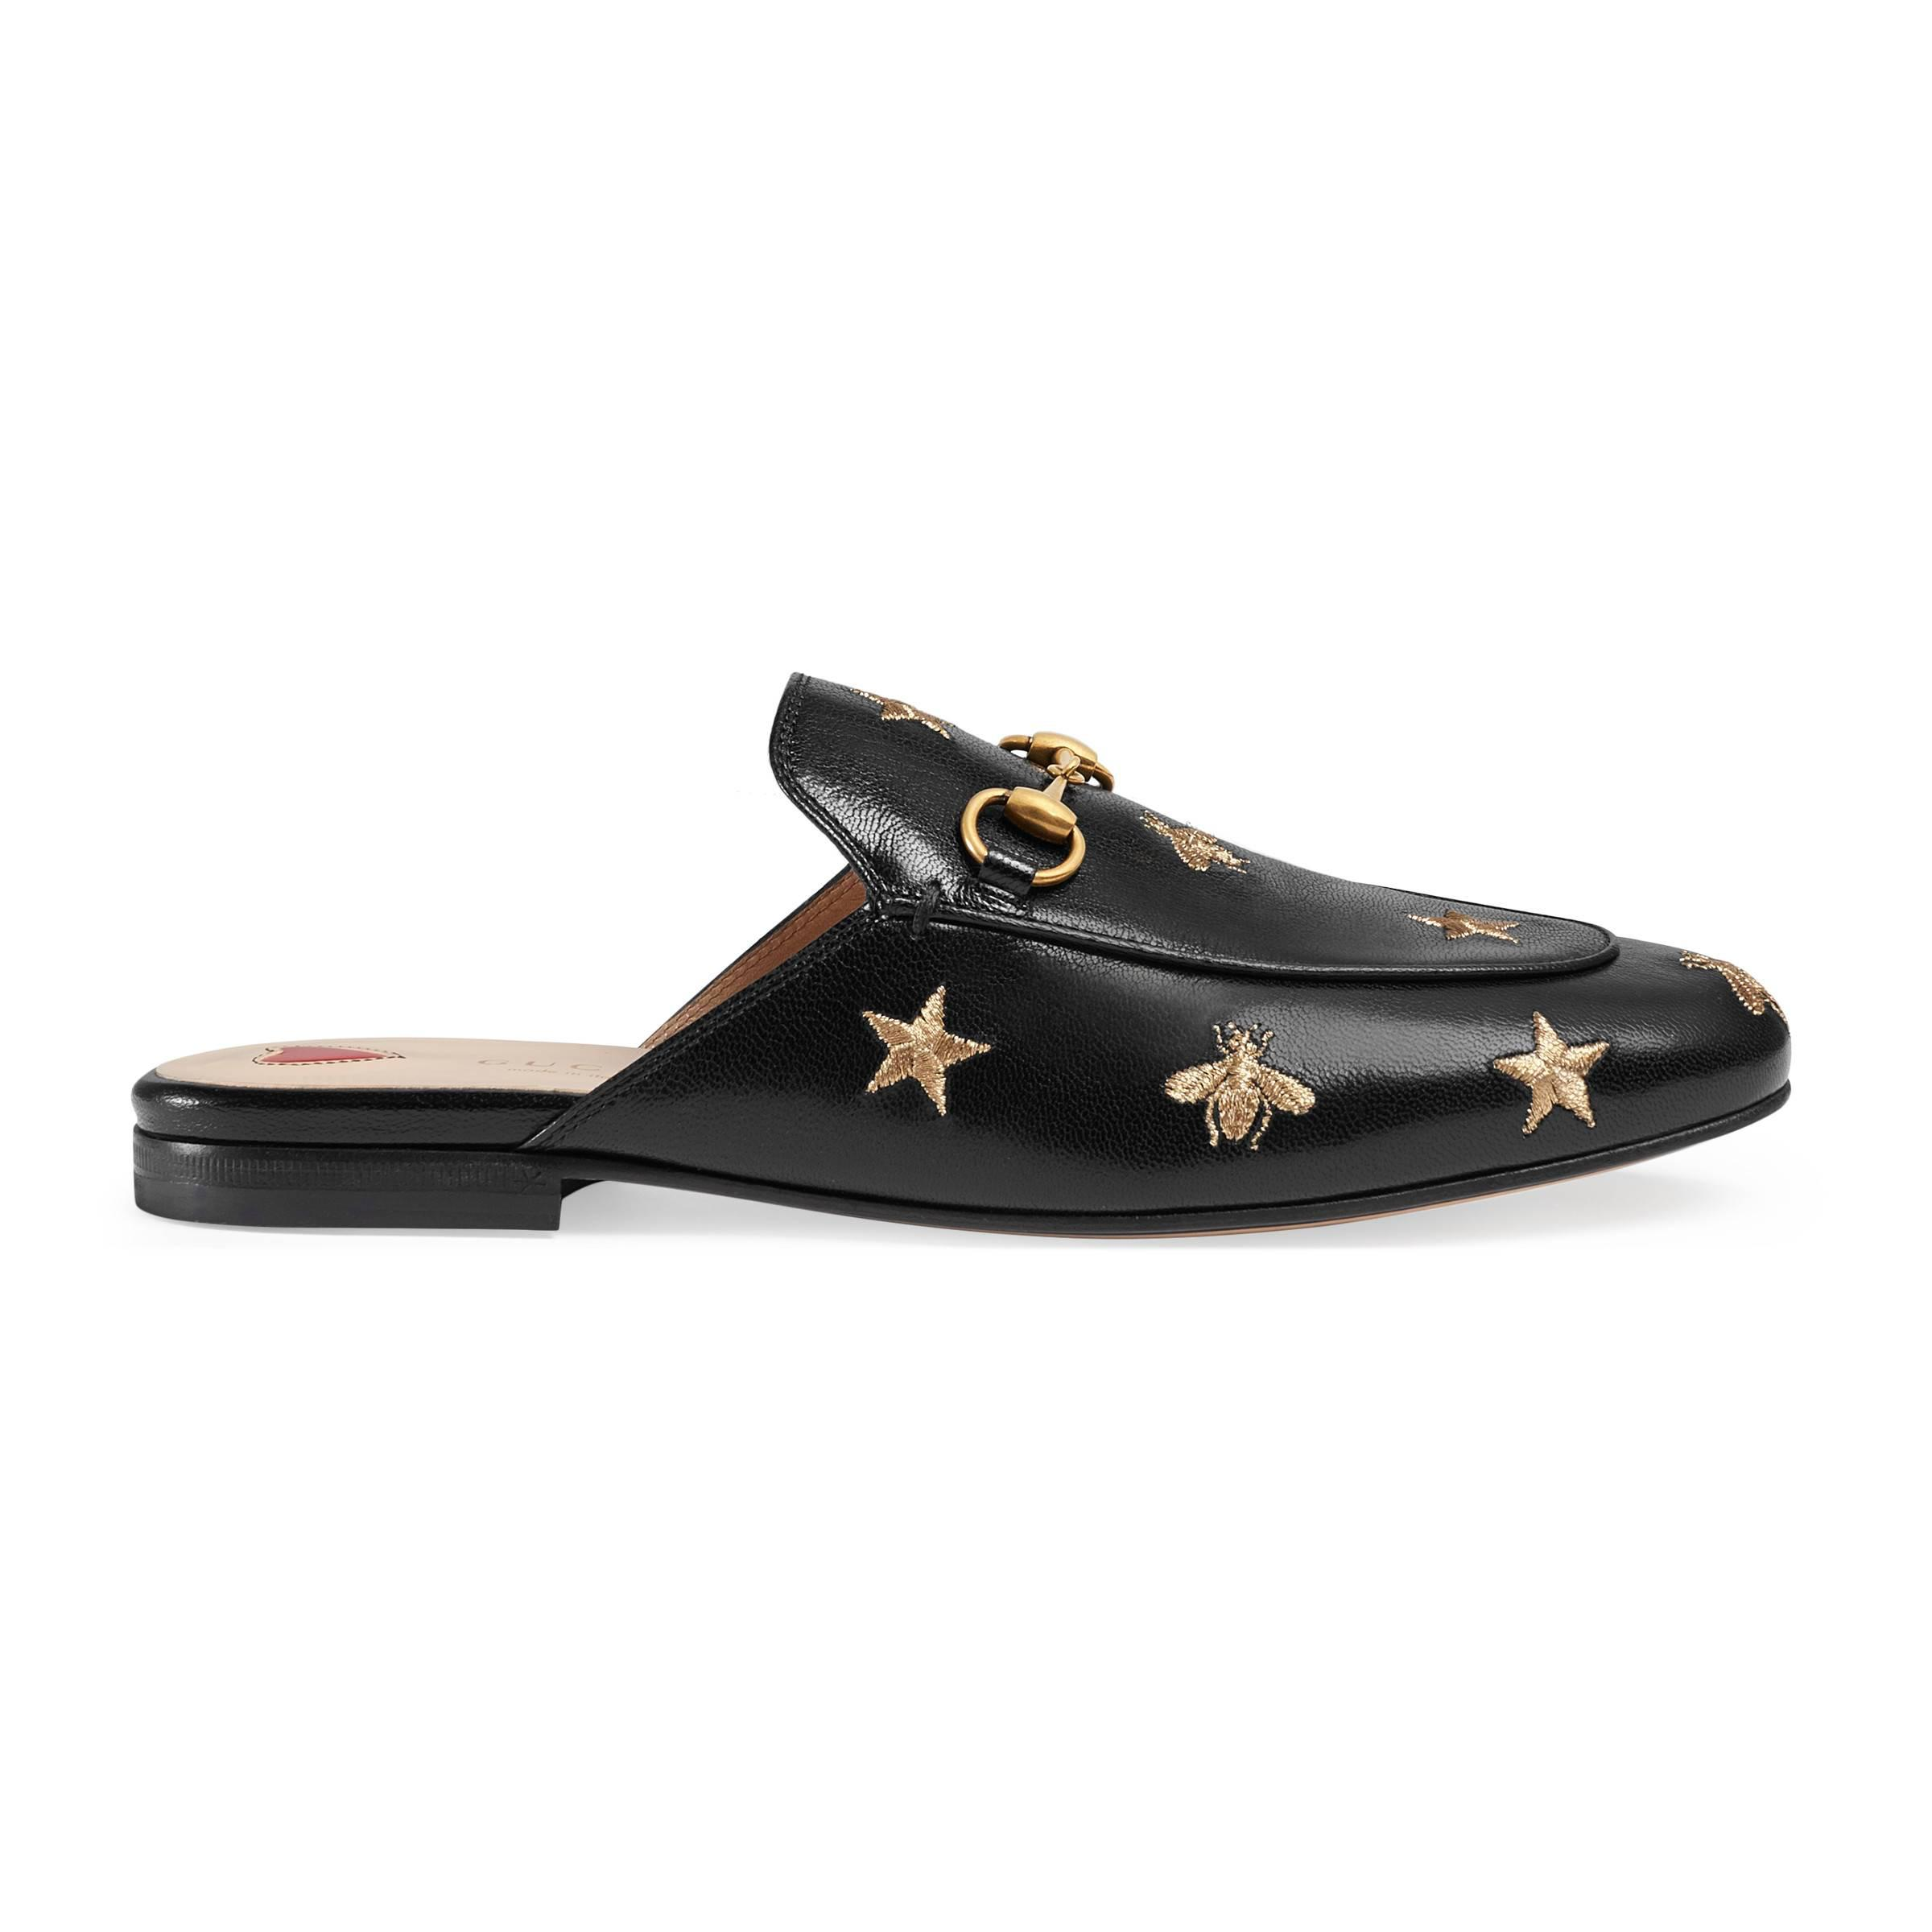 63df5e1e5b8 Gucci 10mm Princetown Embroidered Leather Mule in Black - Lyst